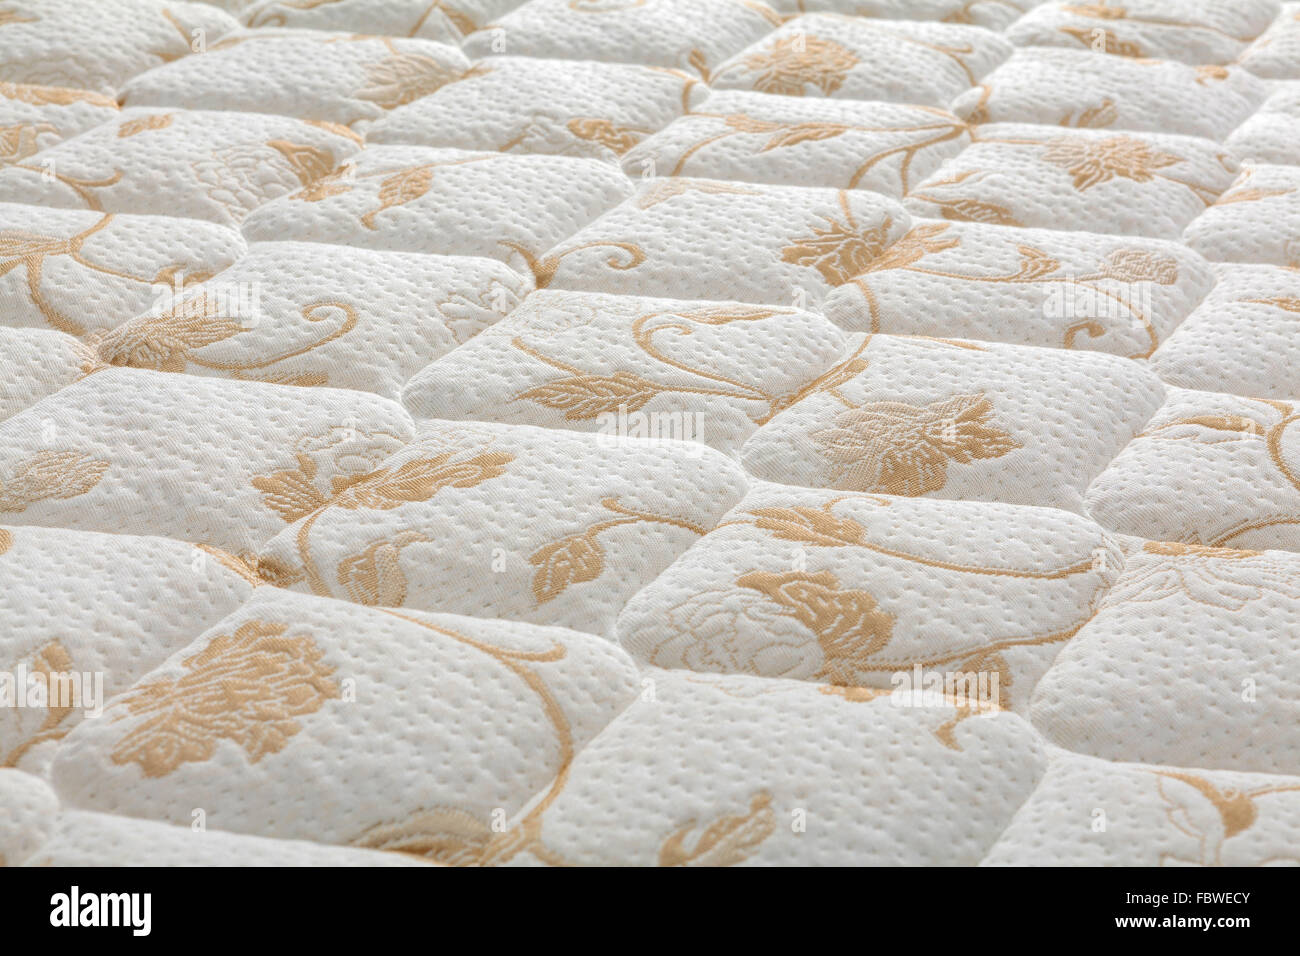 Brand new clean mattress cover surface - Stock Image